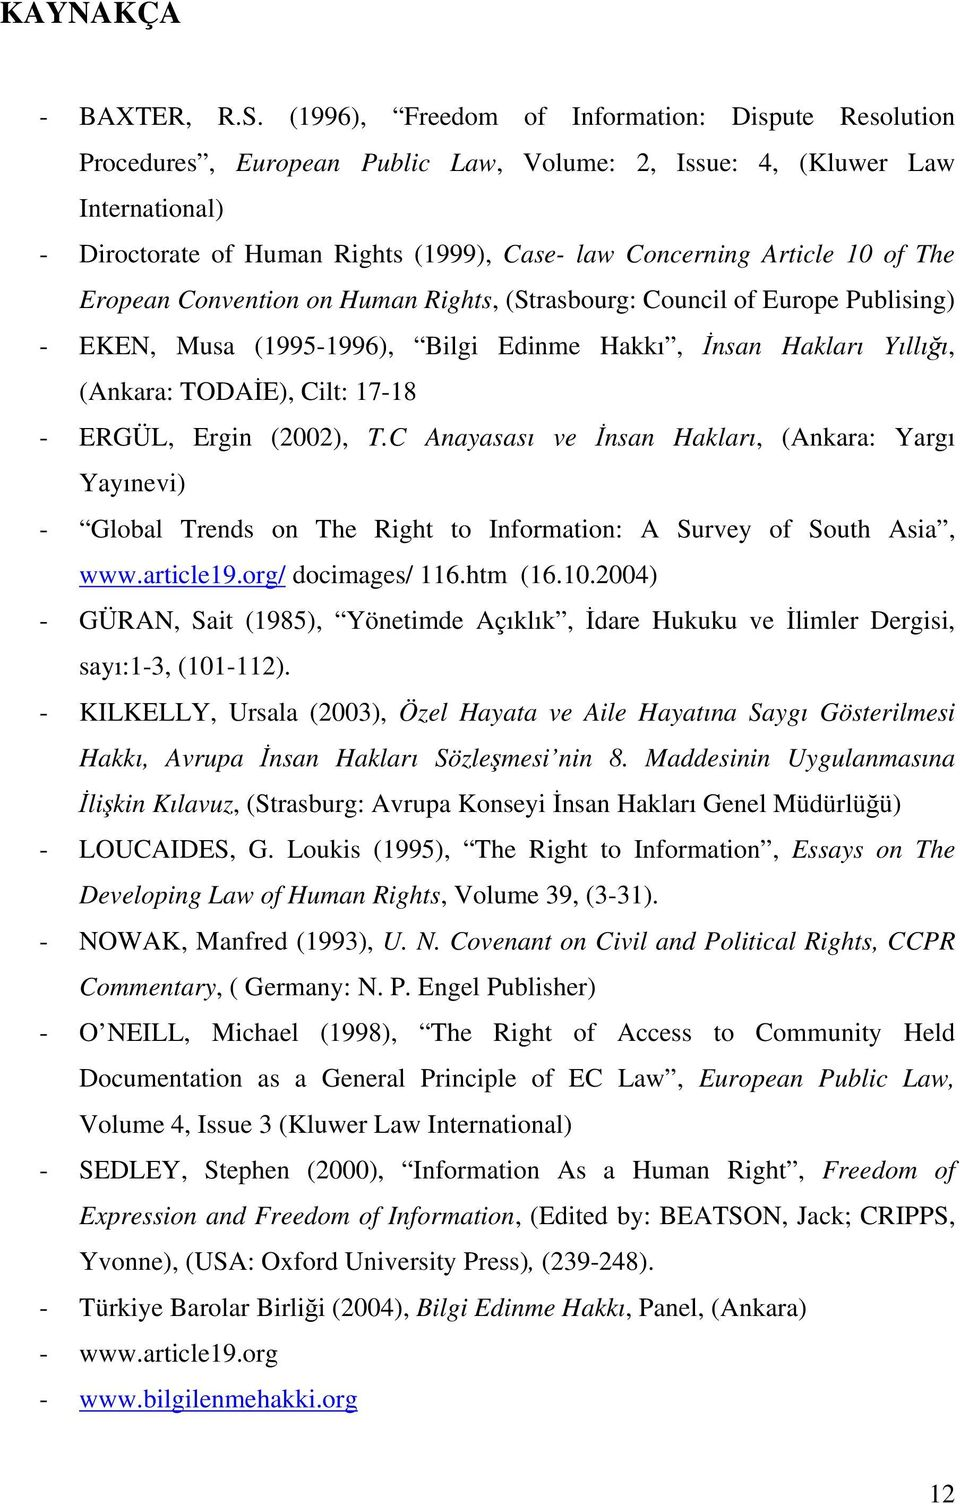 10 of The Eropean Convention on Human Rights, (Strasbourg: Council of Europe Publising) - EKEN, Musa (1995-1996), Bilgi Edinme Hakkı, İnsan Hakları Yıllığı, (Ankara: TODAİE), Cilt: 17-18 - ERGÜL,